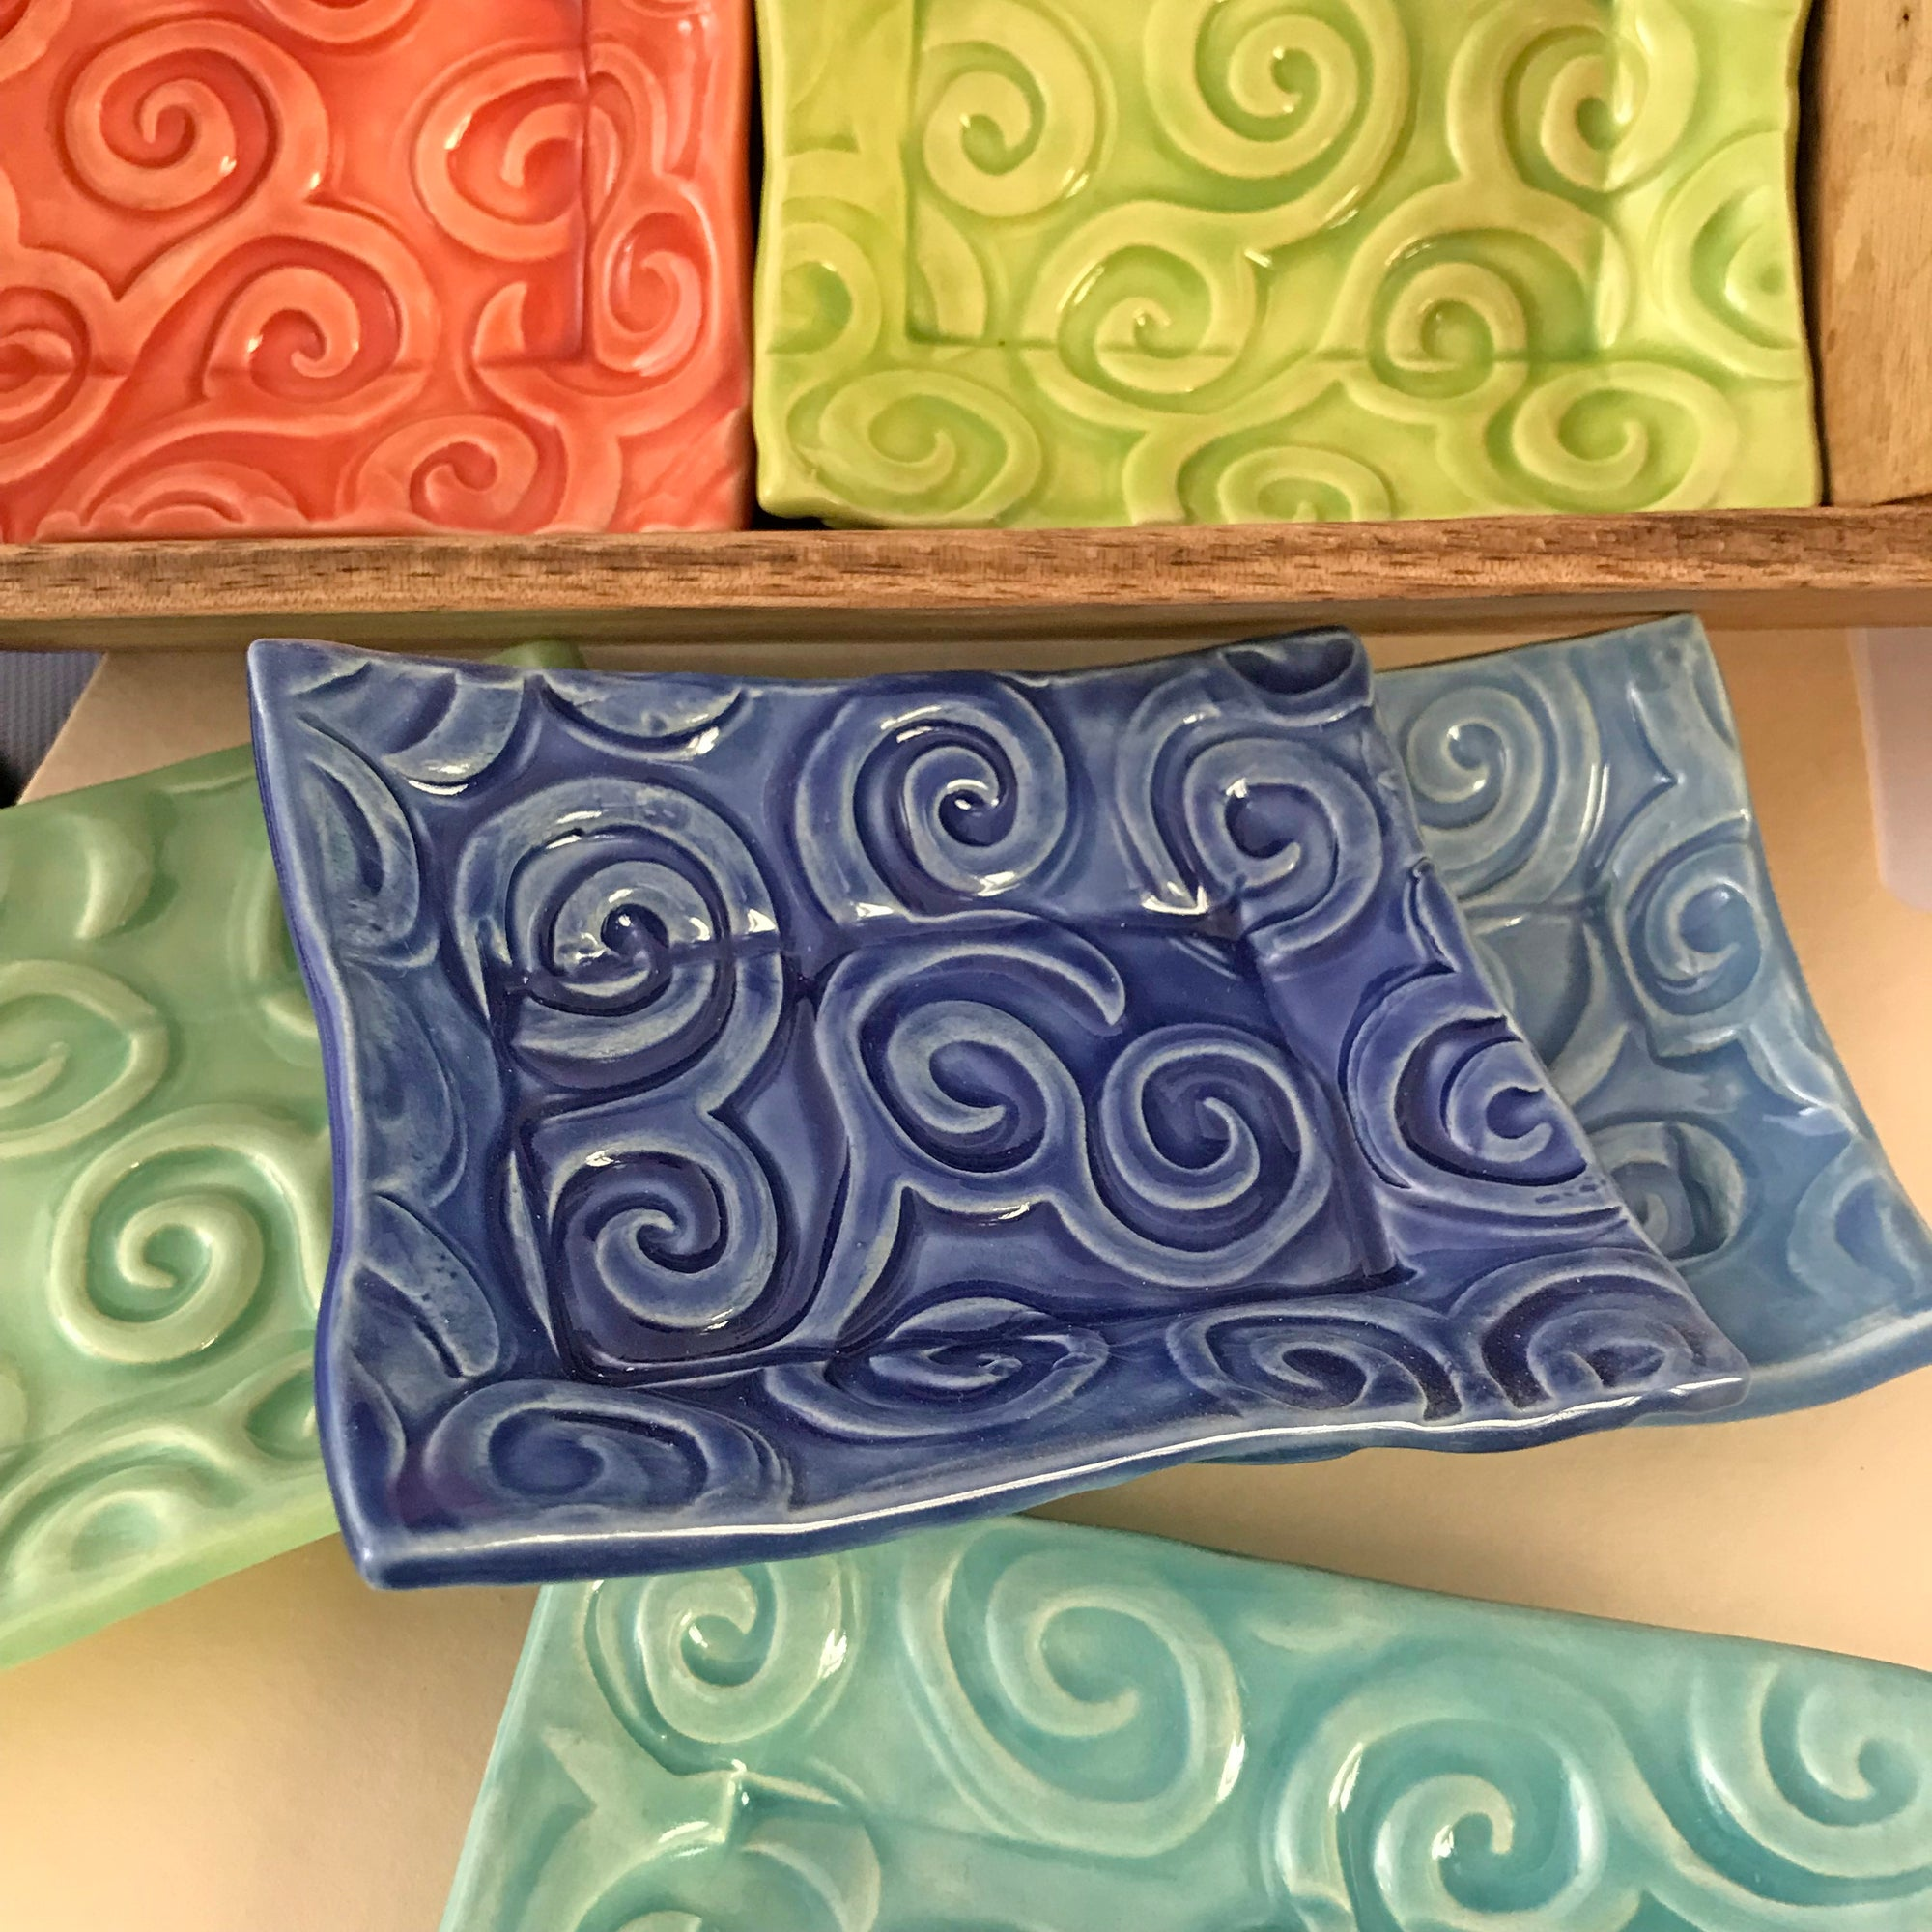 Spiral designs repeat randomly on our deeply embossed ceramic trays.  Very unique and Intriguing design.